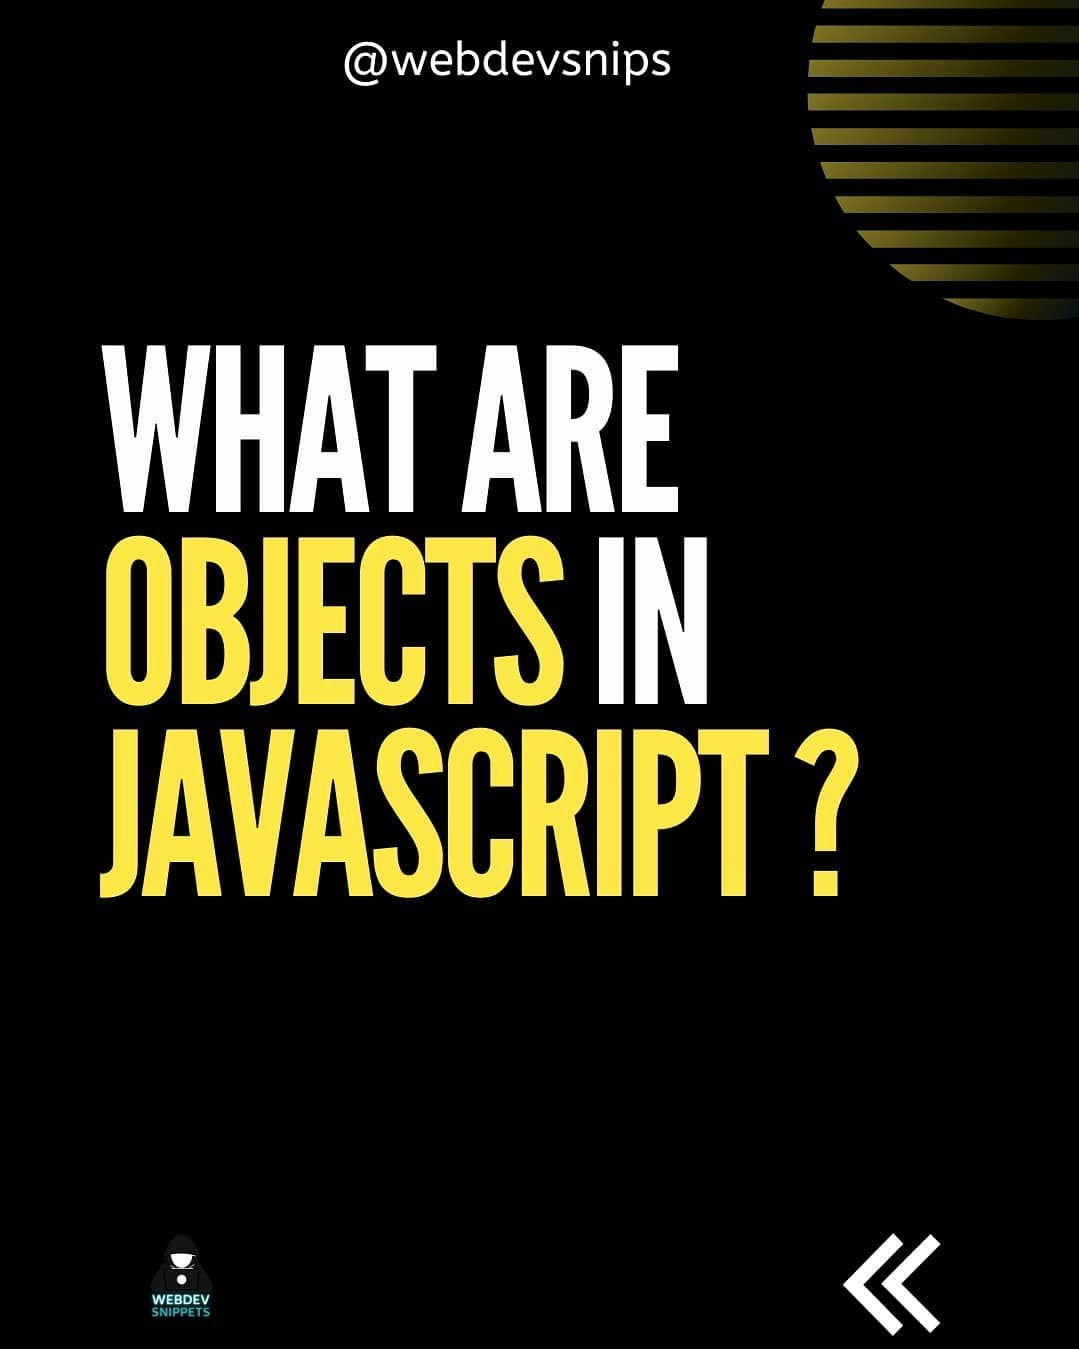 What are objects in javascript